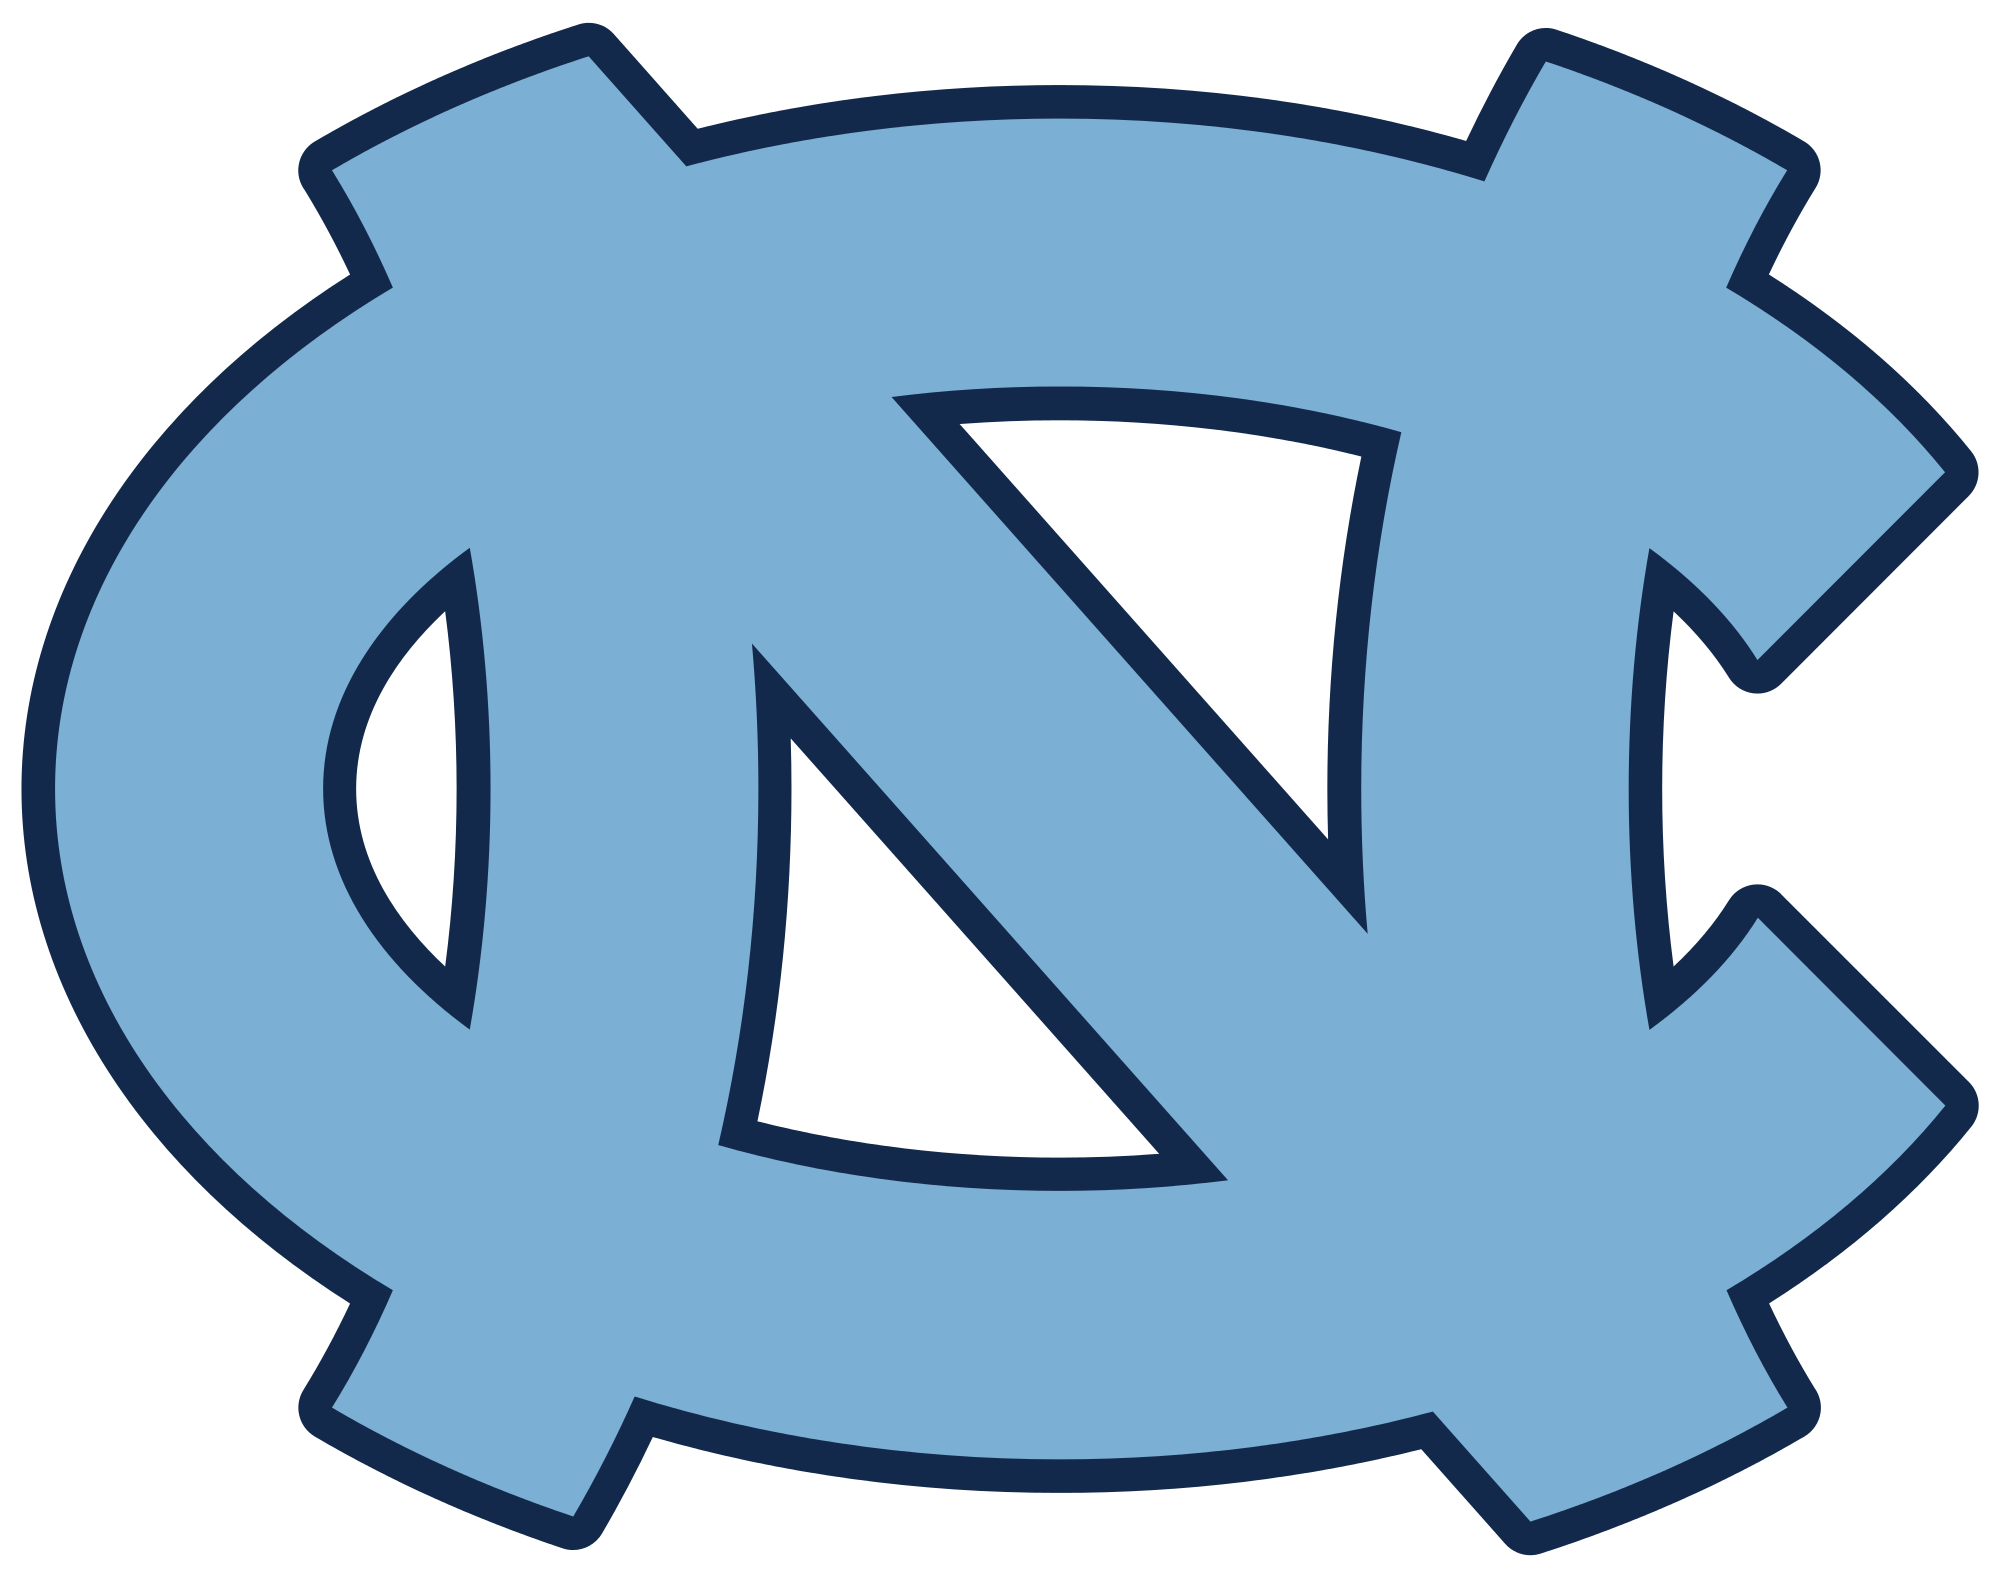 Carolina blue has been a statement in collegiate sports for over 200 years. UNC is considered a top athletic program, and other teams always have to be aware and ready when they are going to play Carolina.